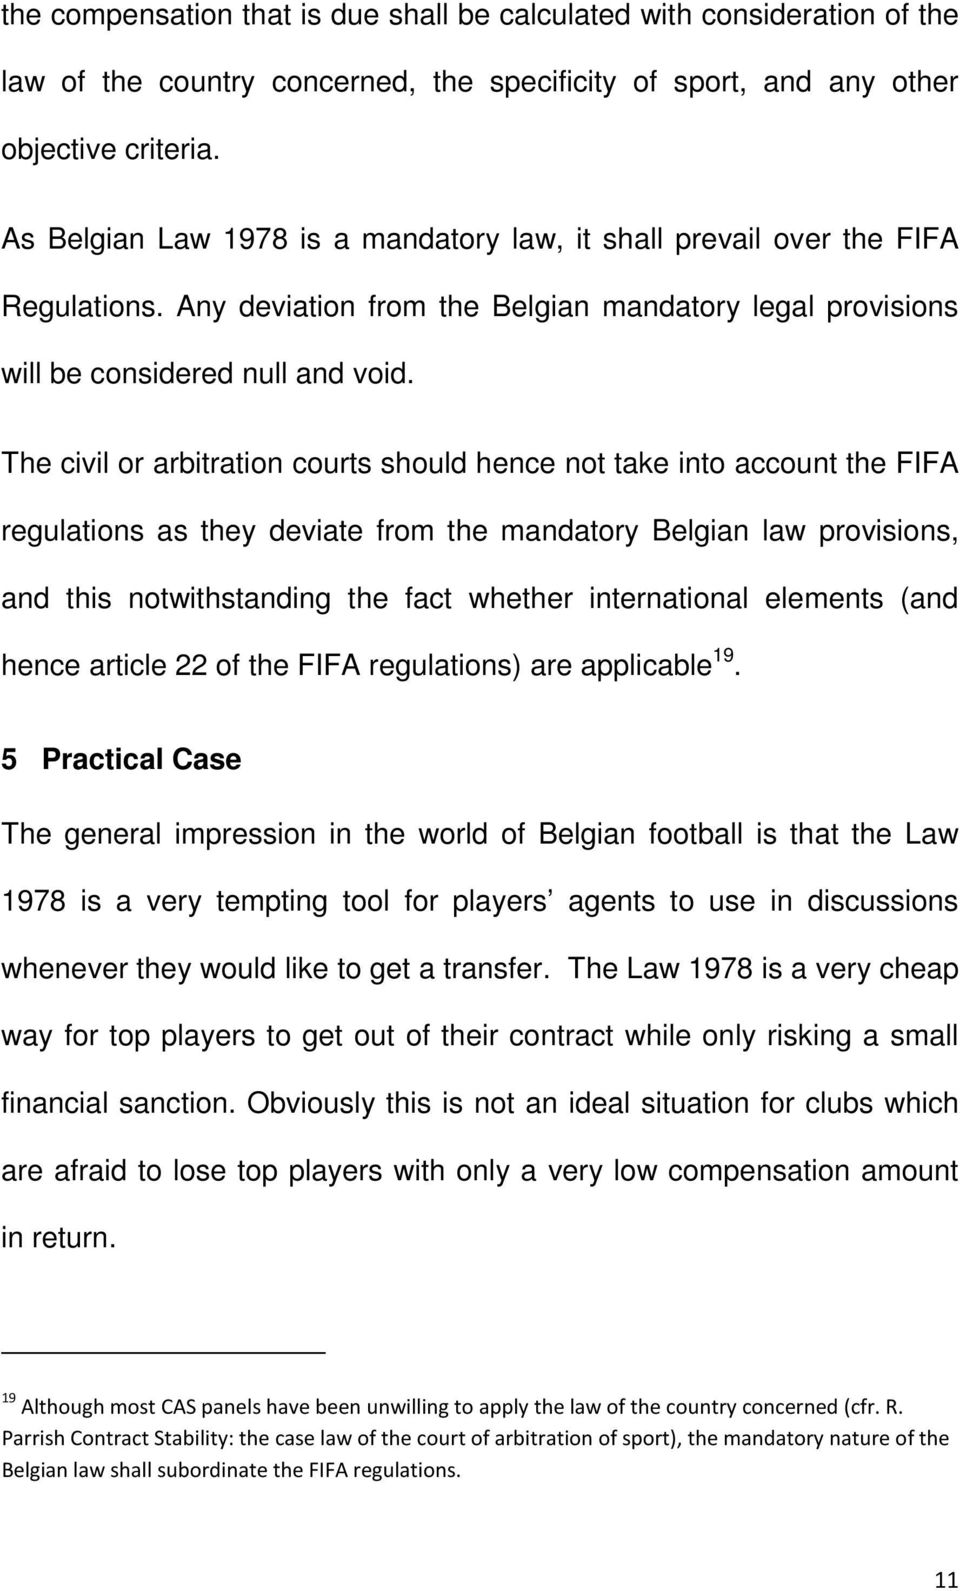 The civil or arbitration courts should hence not take into account the FIFA regulations as they deviate from the mandatory Belgian law provisions, and this notwithstanding the fact whether